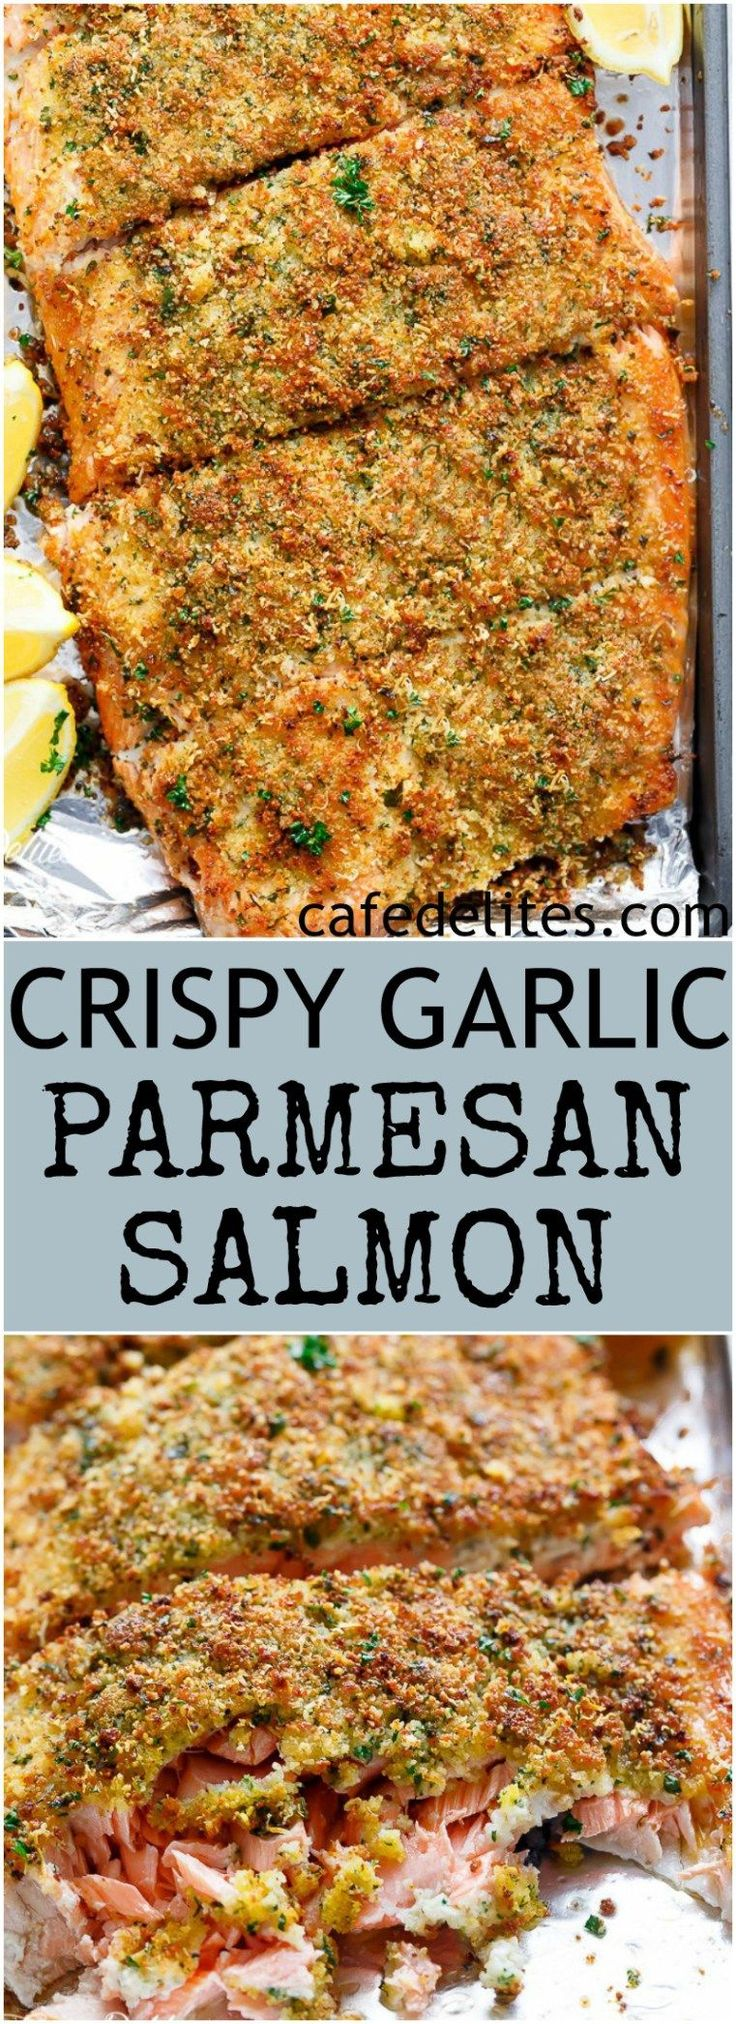 Crispy Garlic Parmesan Salmon is ready and 0n your table in less than 15 minutes, with a 5-ingredient crispy top! Restaurant quality salmon right at home! | http://cafedelites.com #seafoodrecipes